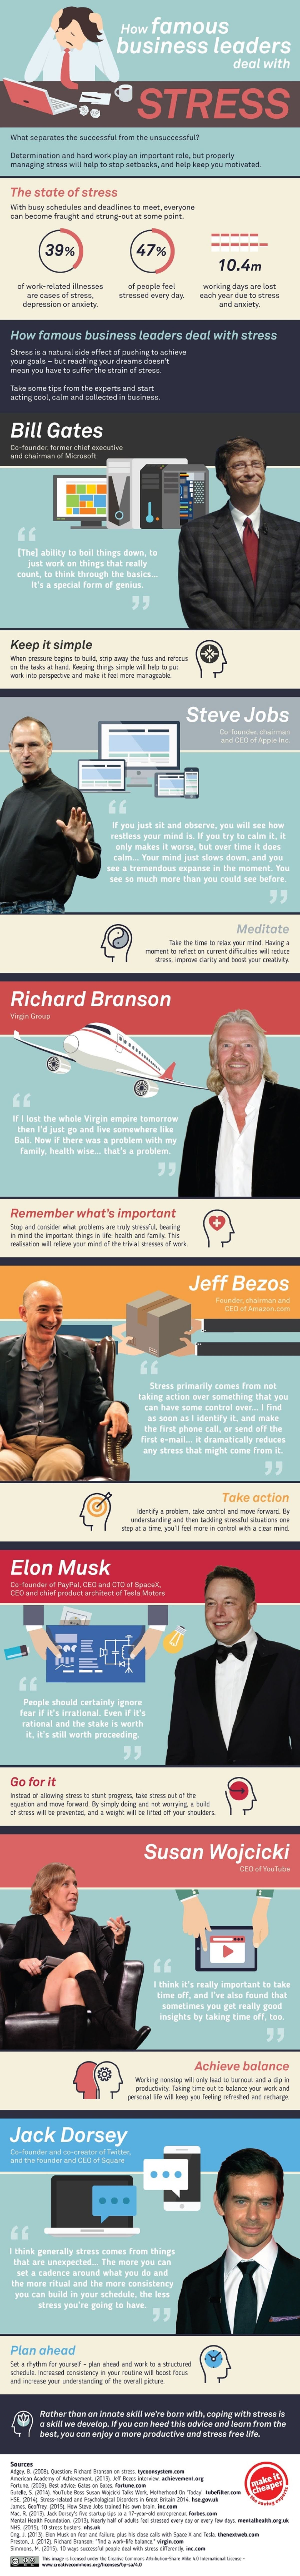 how-famous-business-leaders-deal-with-stress-infographic